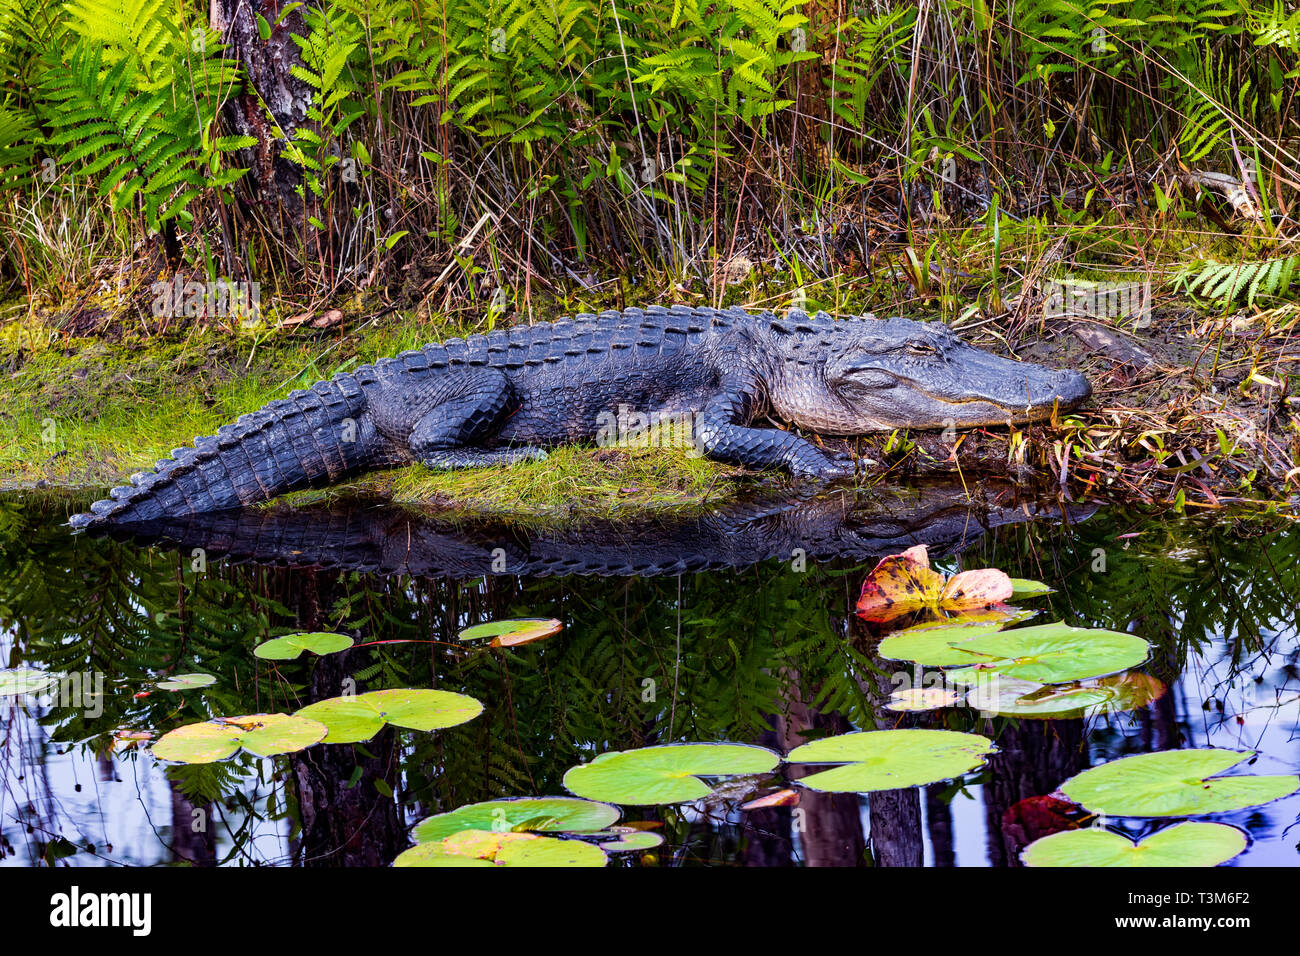 Adult American alligator resting in the sun on bank of Okefenokee swamp, with lily pads in foreground. - Stock Image